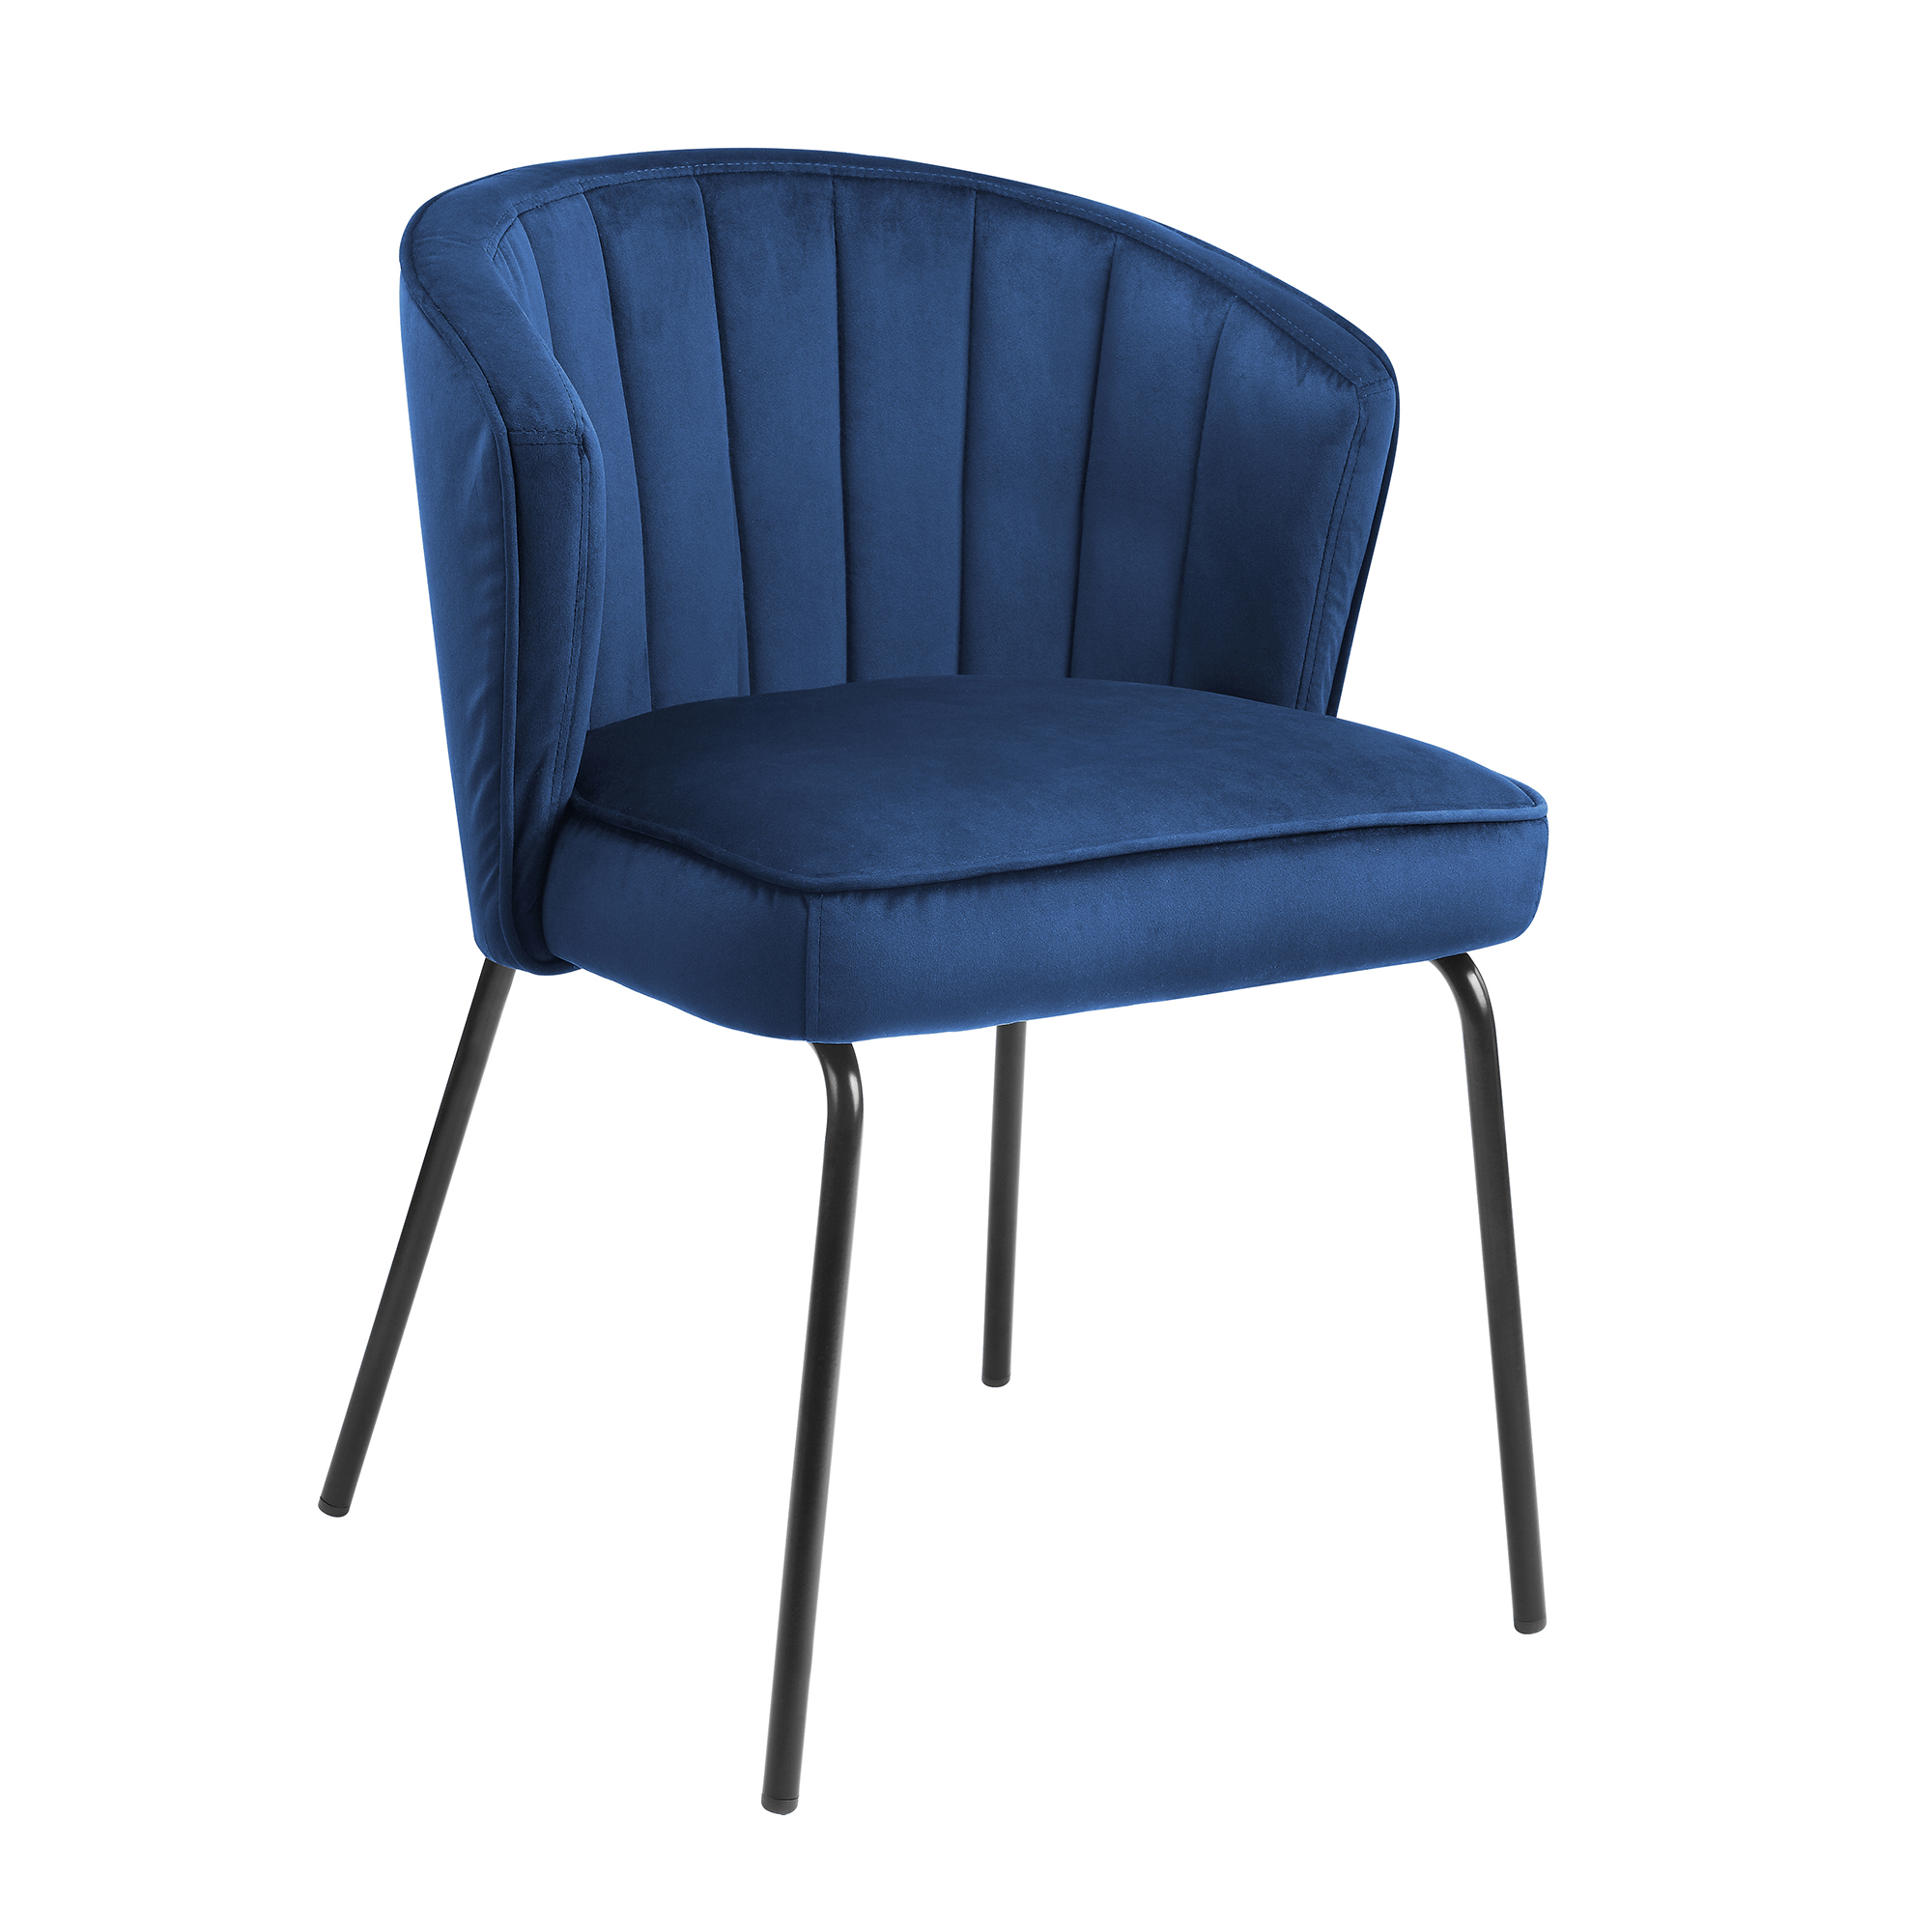 Velvet Dining Chairs Navy Blue With metal legs